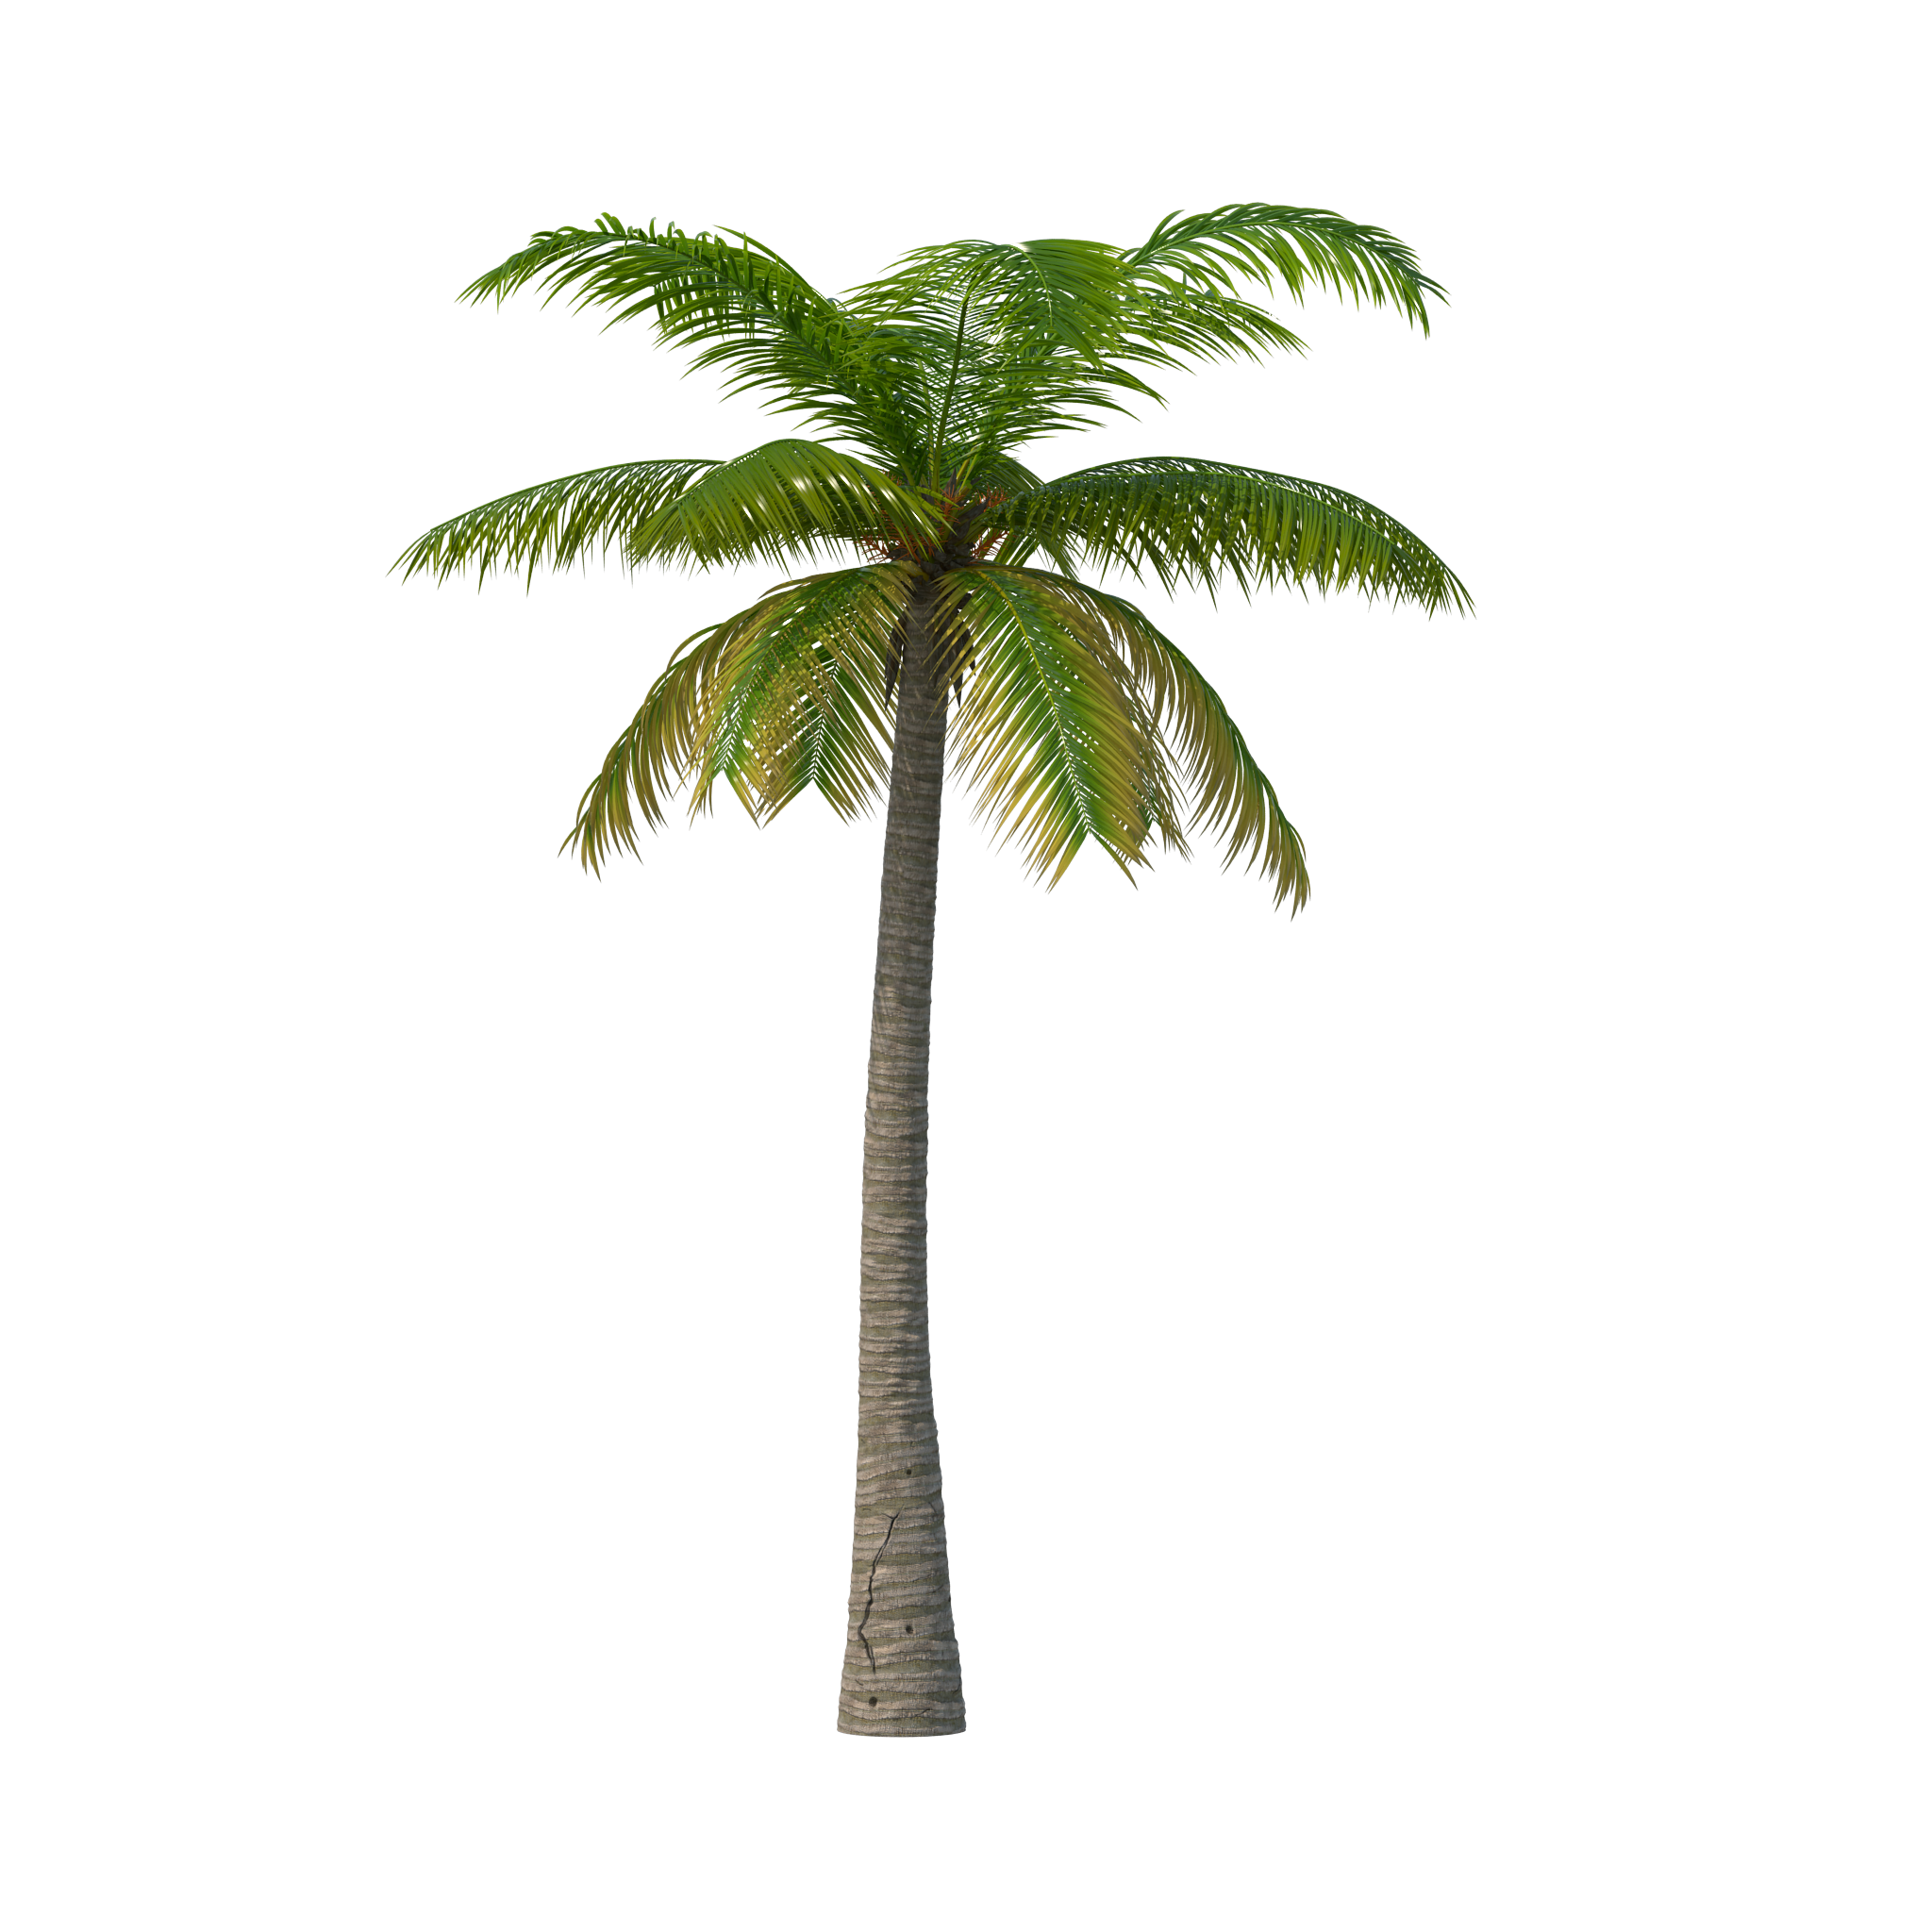 Palm trees png transparent. Tree image purepng free